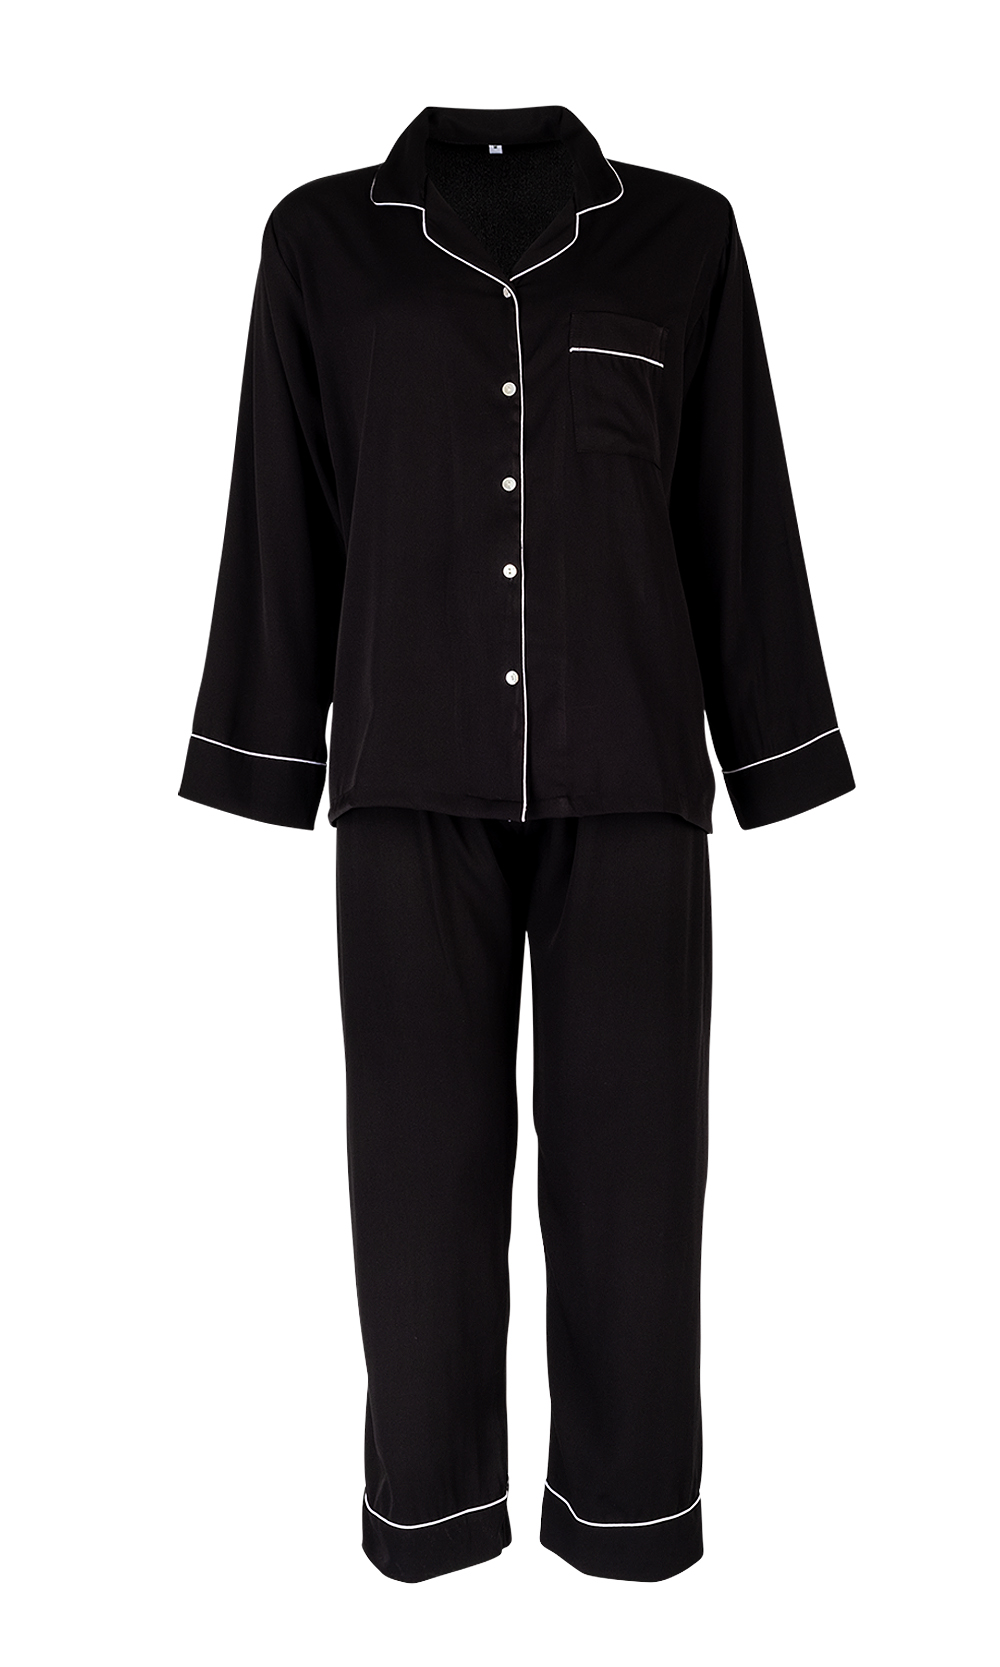 Black Luxurious Sleepwear & Pyjamas Set - Set